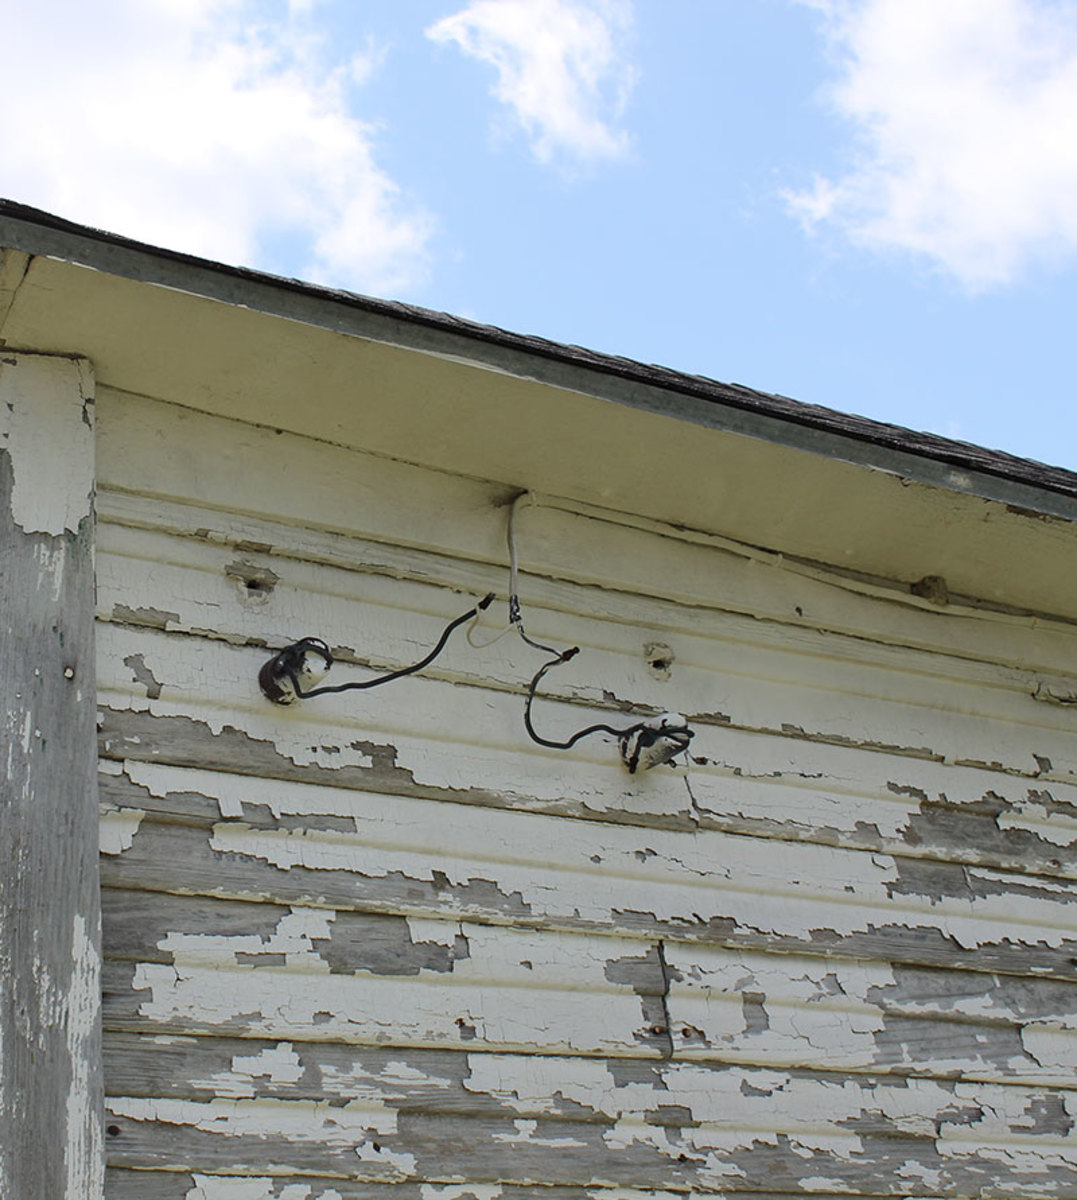 Power lines would come into the home connected with insulators.  This picture shows newer wiring added.  But the original wiring would of went into the homes through the ceramic tubes located above the insulators.